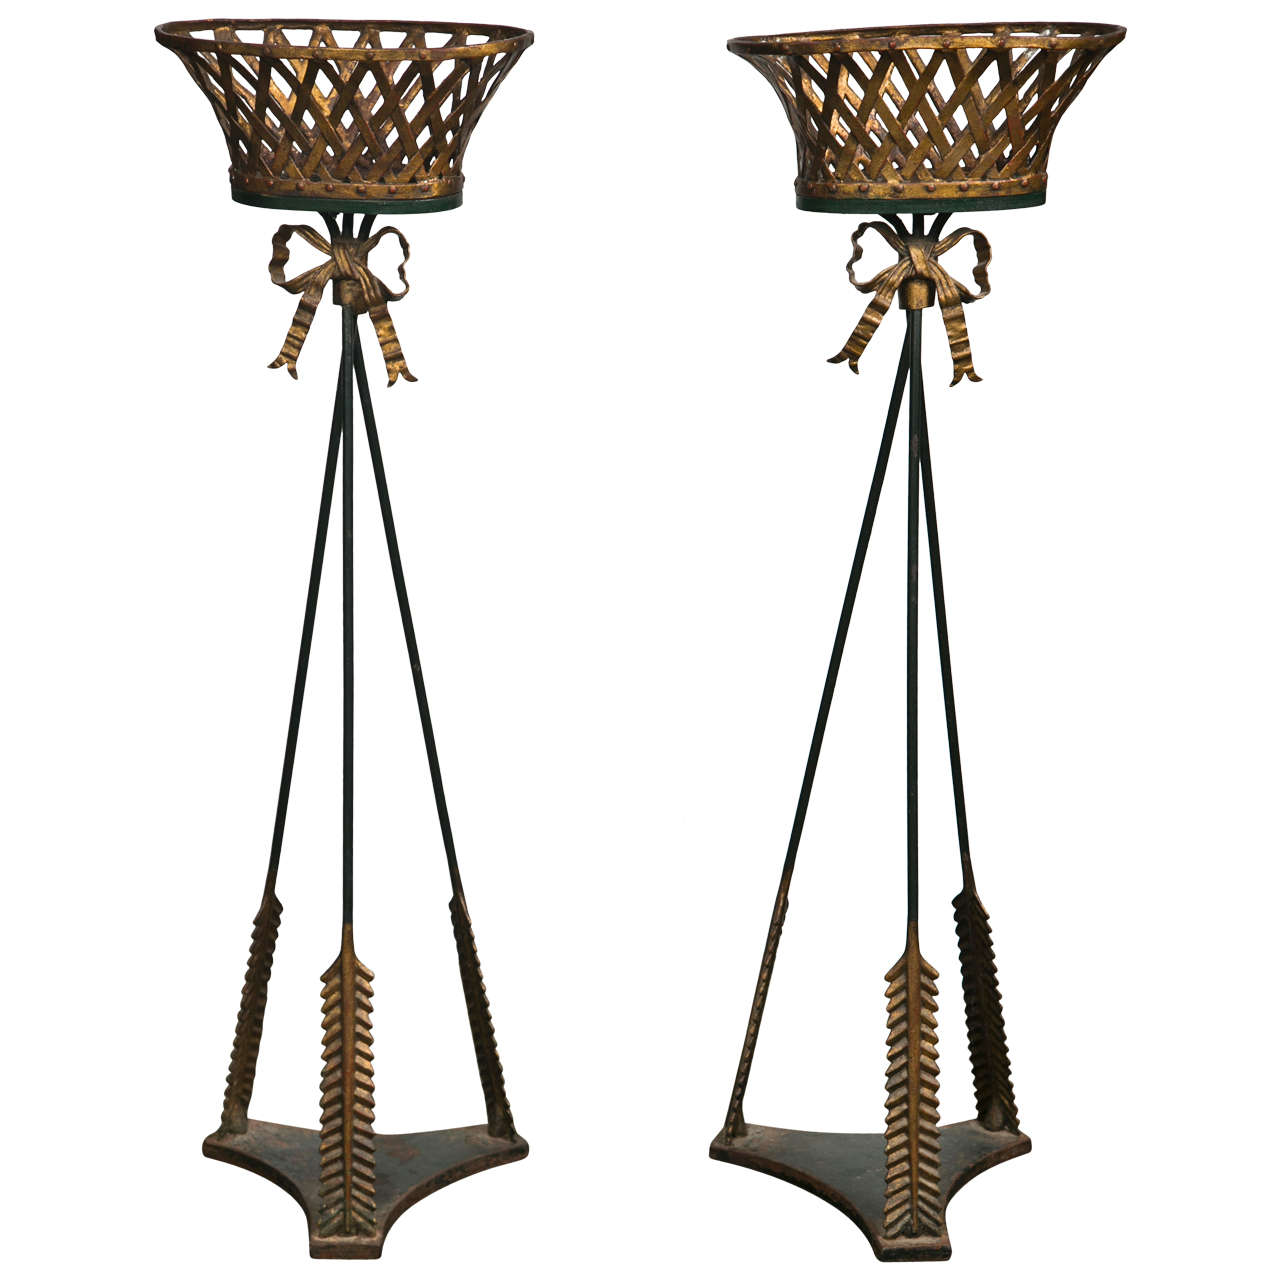 Pair of Basket Form Jardinieres